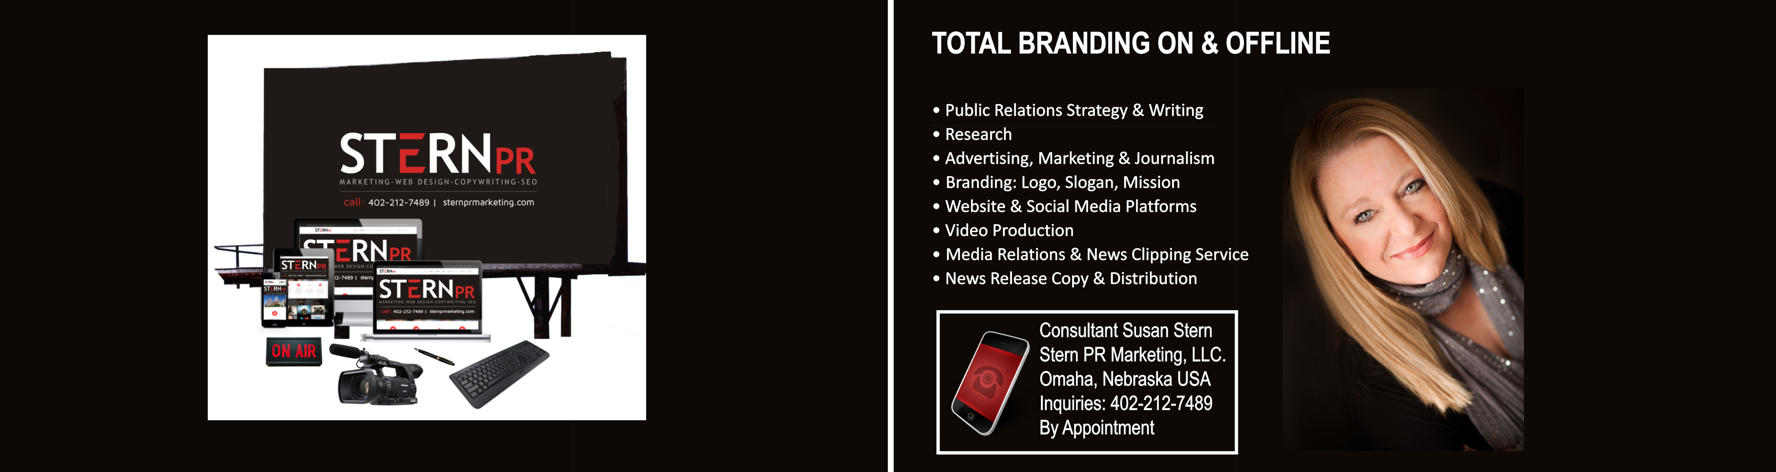 image-reputable-best-omaha-marketing-firm-stern